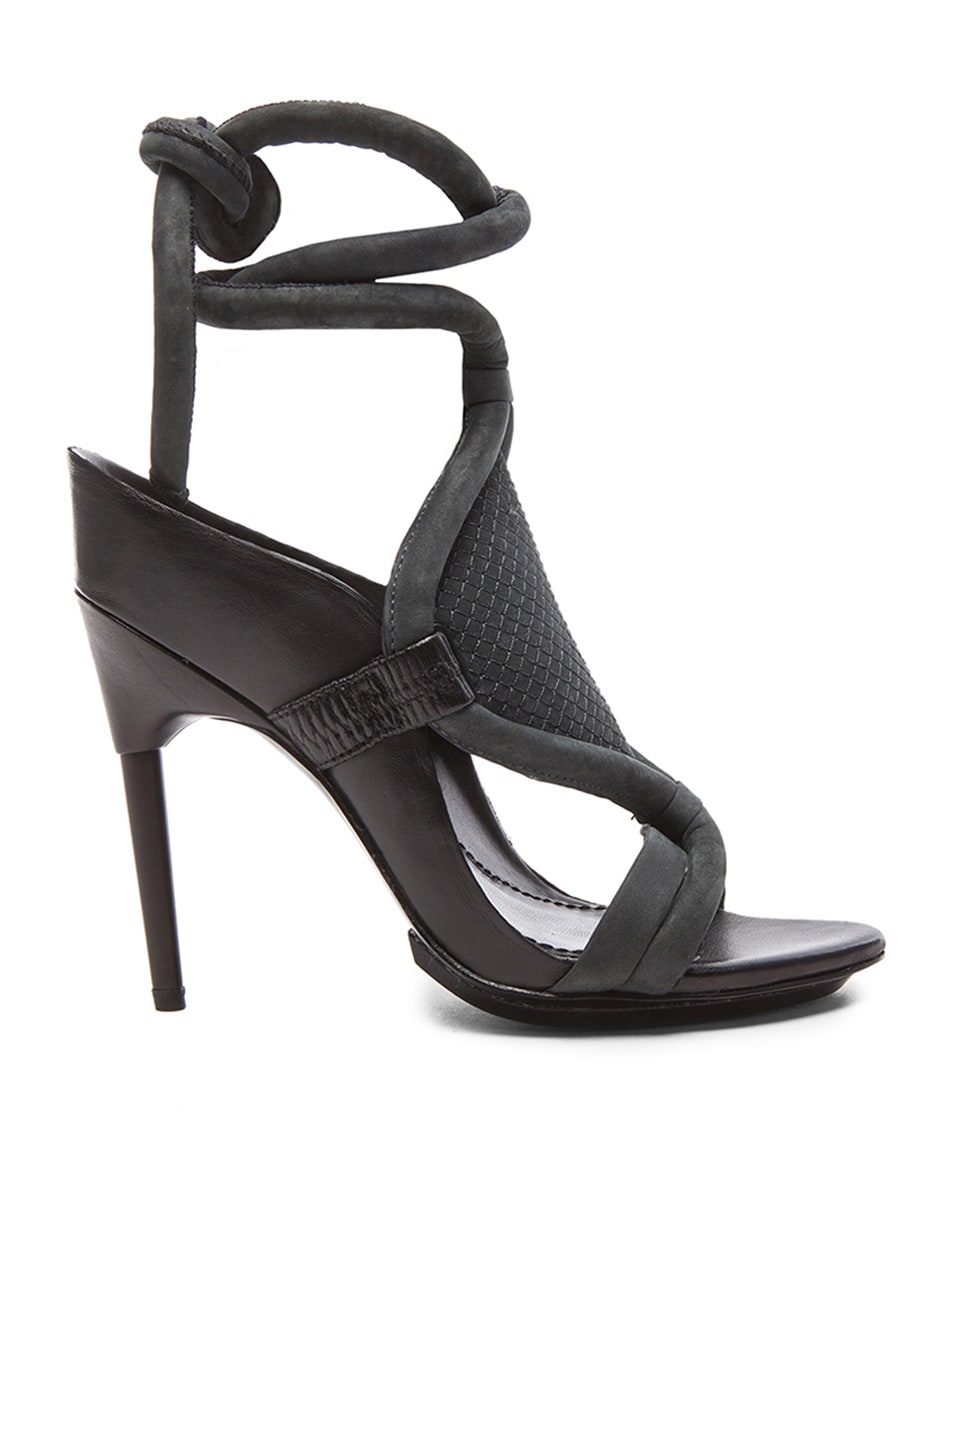 Image 1 of 3.1 phillip lim Marquise High Heel Calfskin Leather Sandals in Anthracite & Black